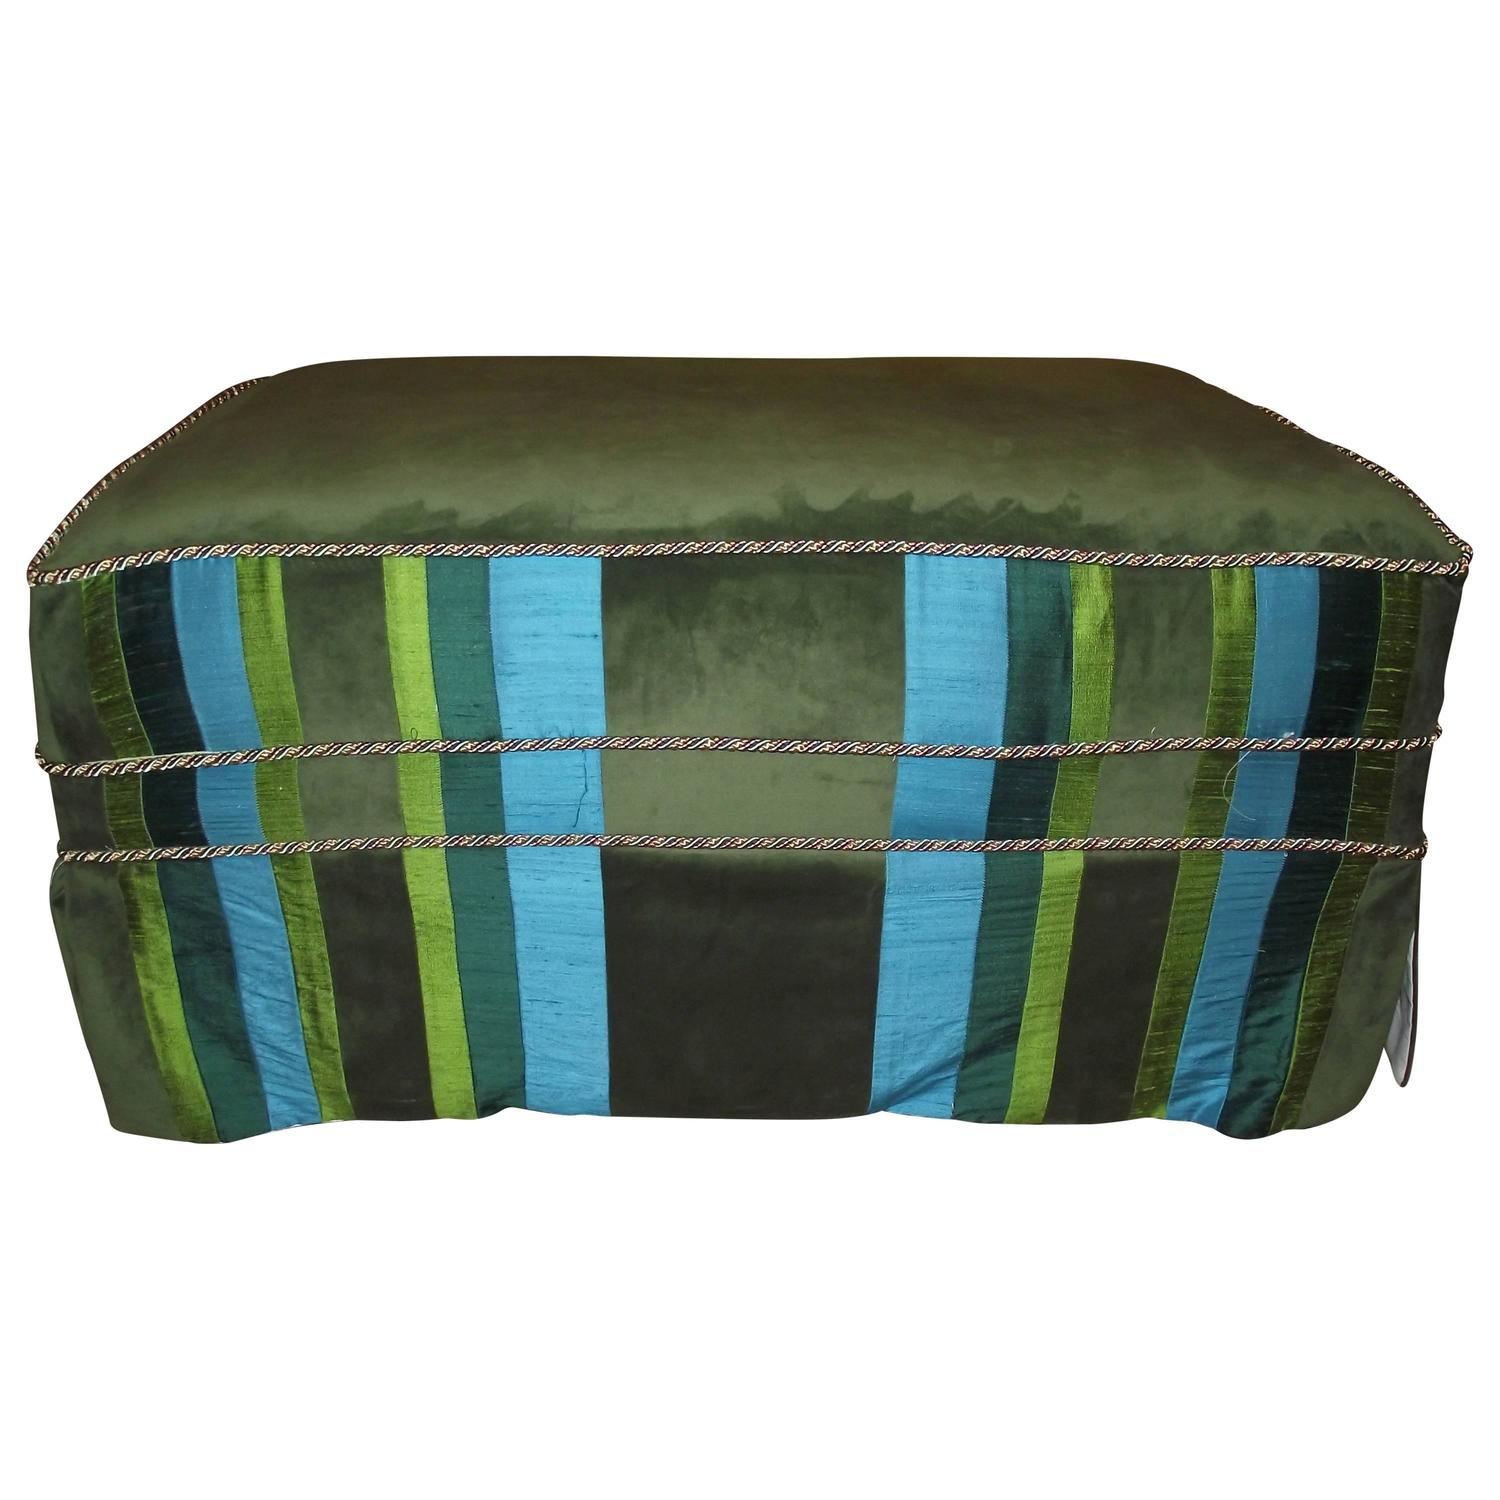 Ottoman Coffee Table Size Slip Covered Turquoise Blue And Green Stripe For Sale At 1stdibs